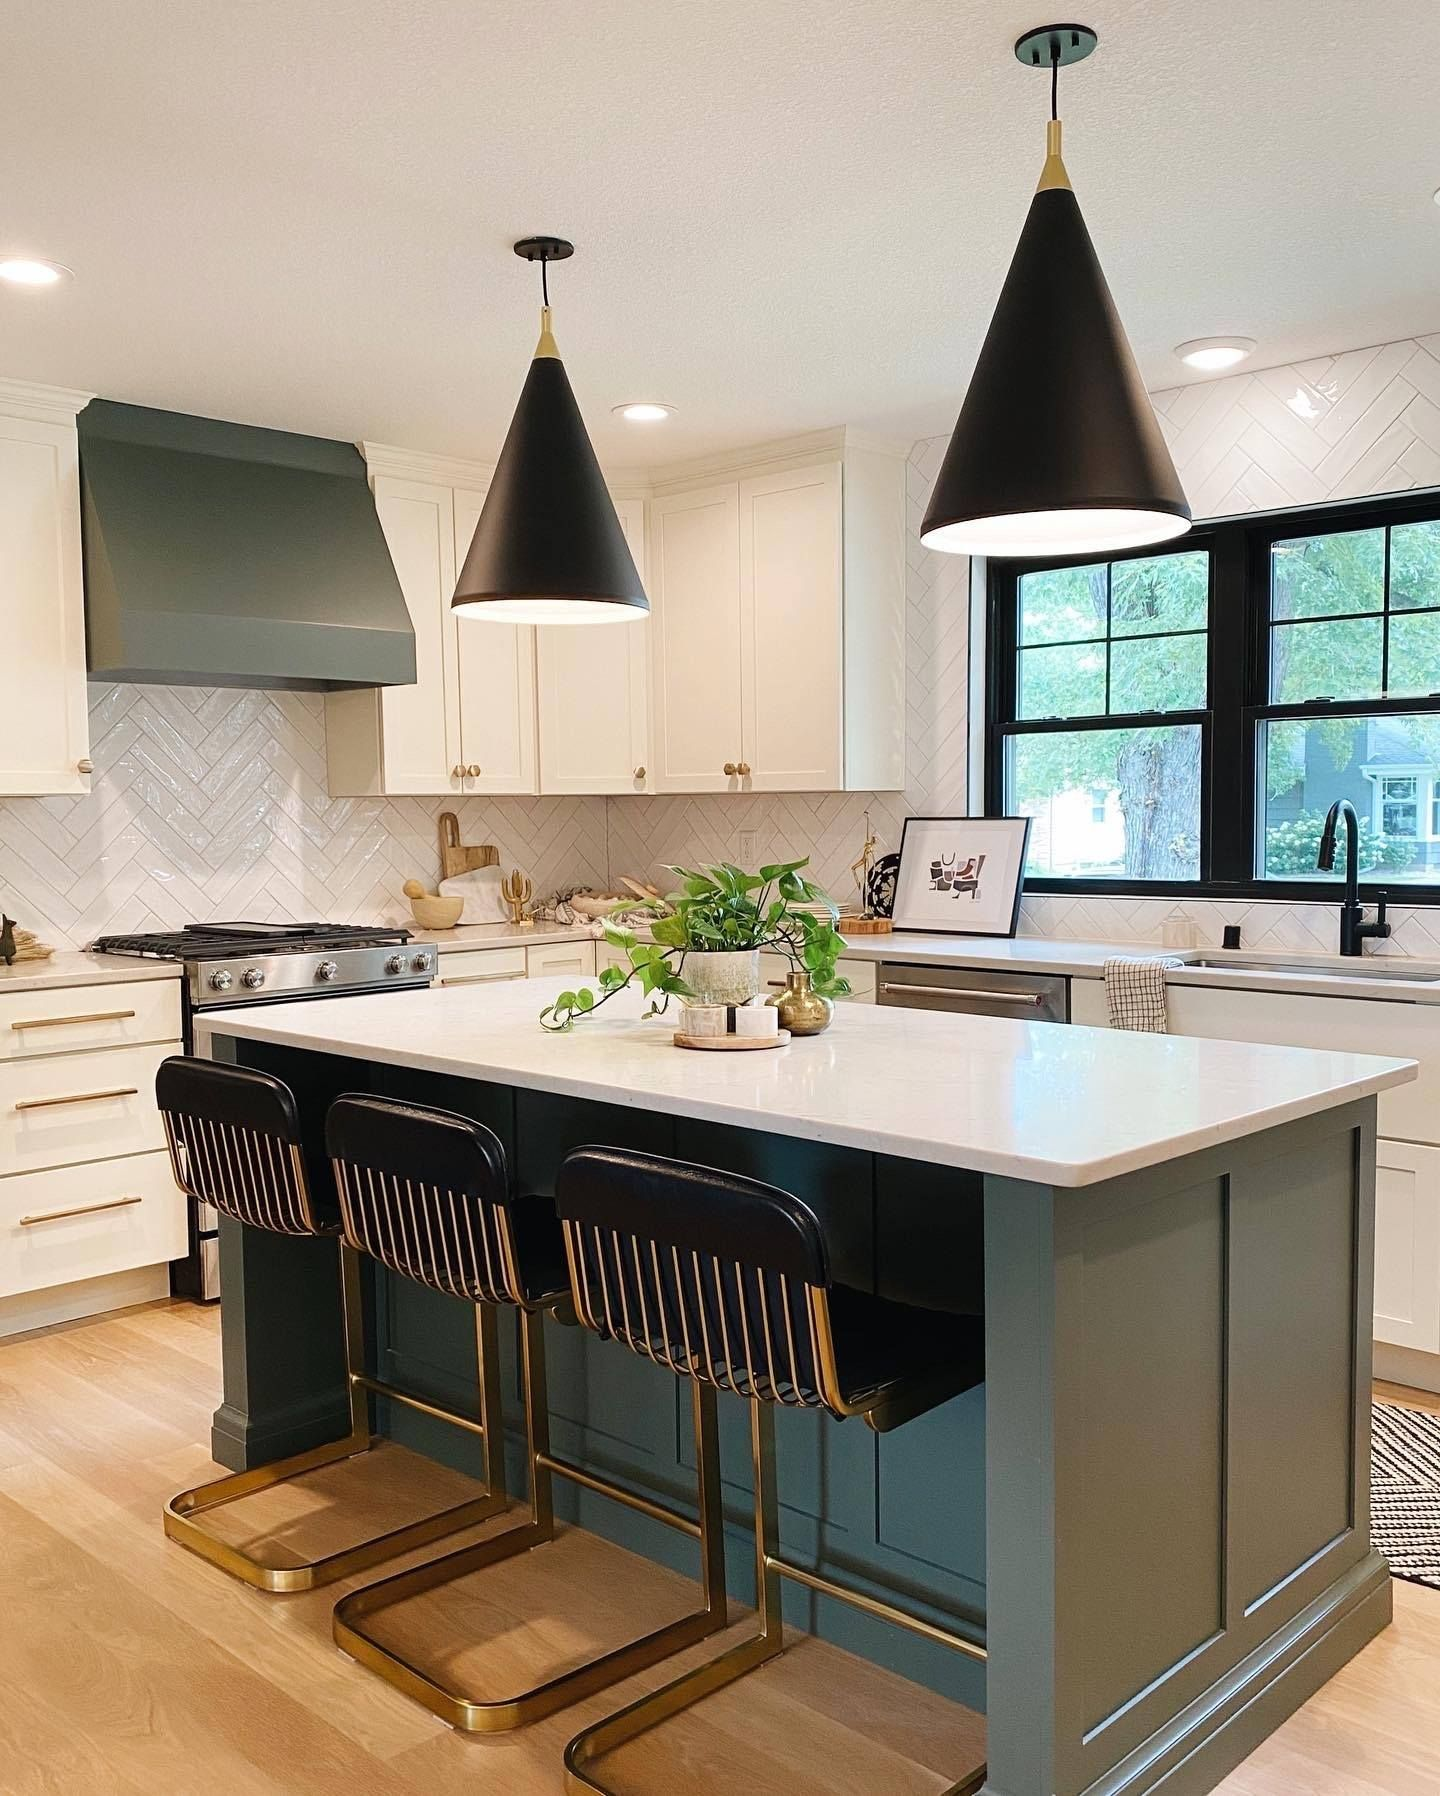 Trending in Kitchens and Baths: Green Cabinetry